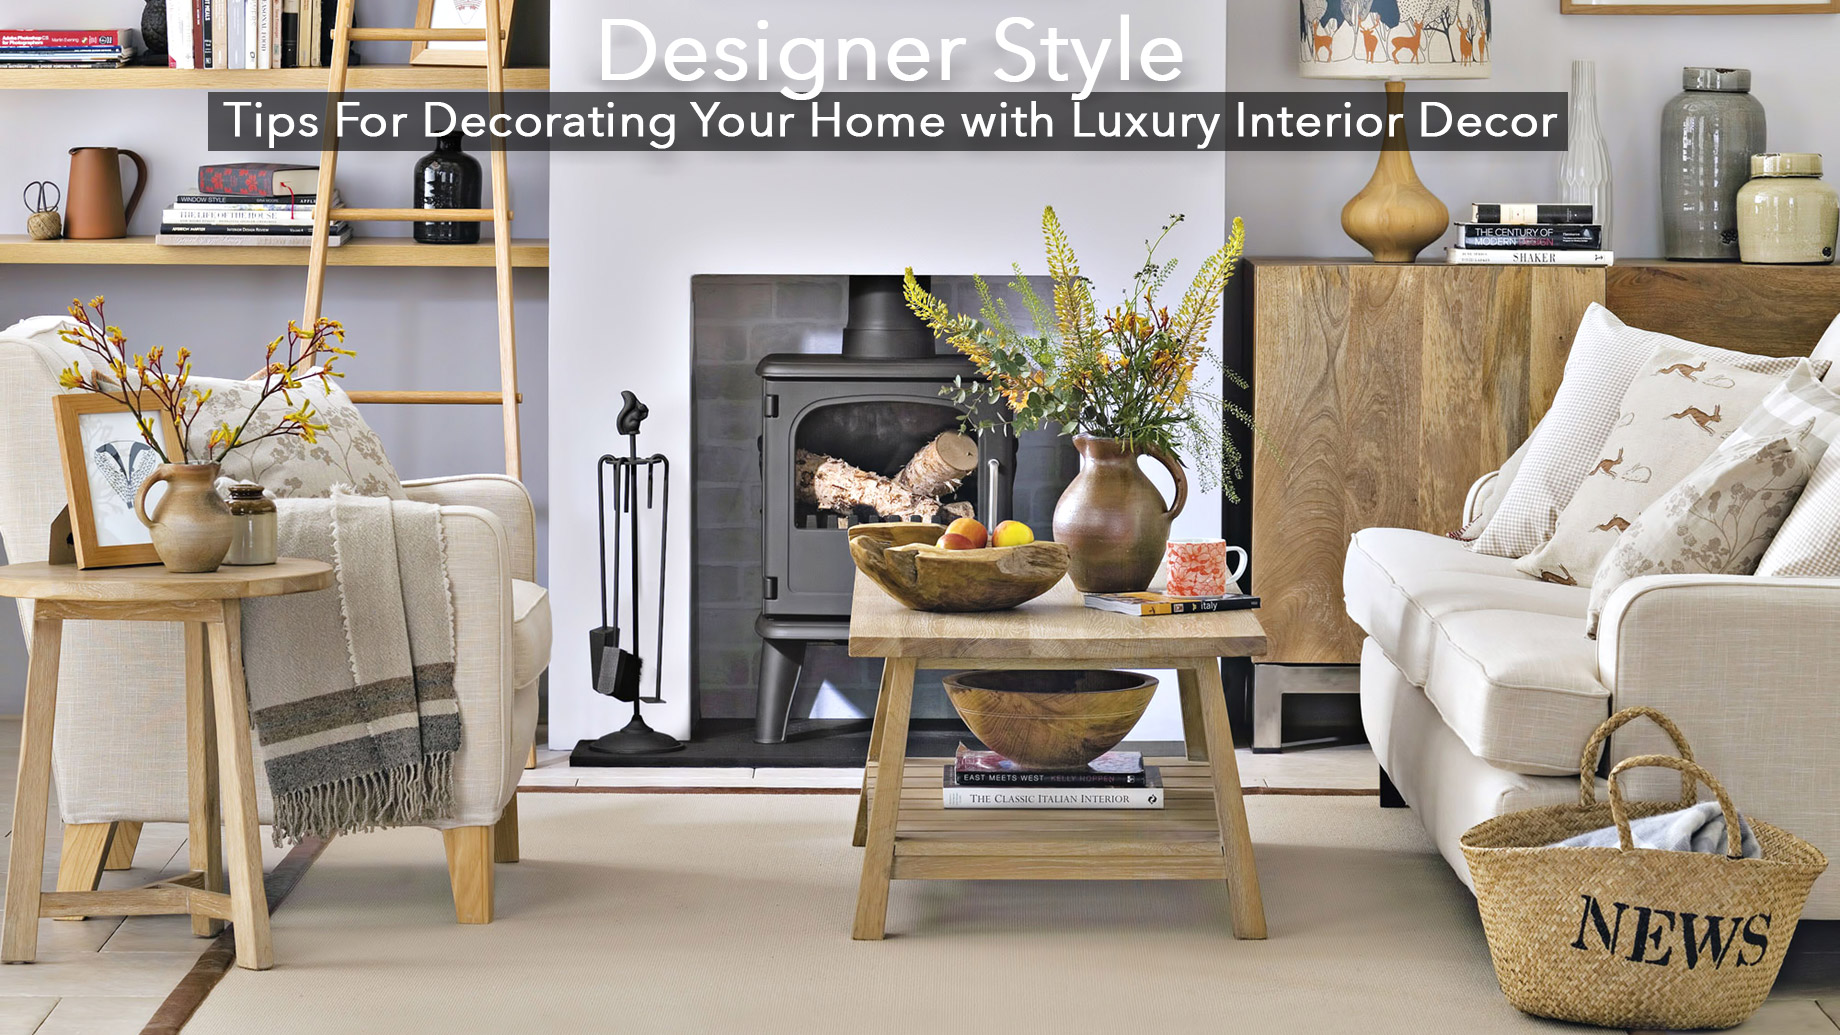 Designer Style Tips For Decorating Your Home With Luxury